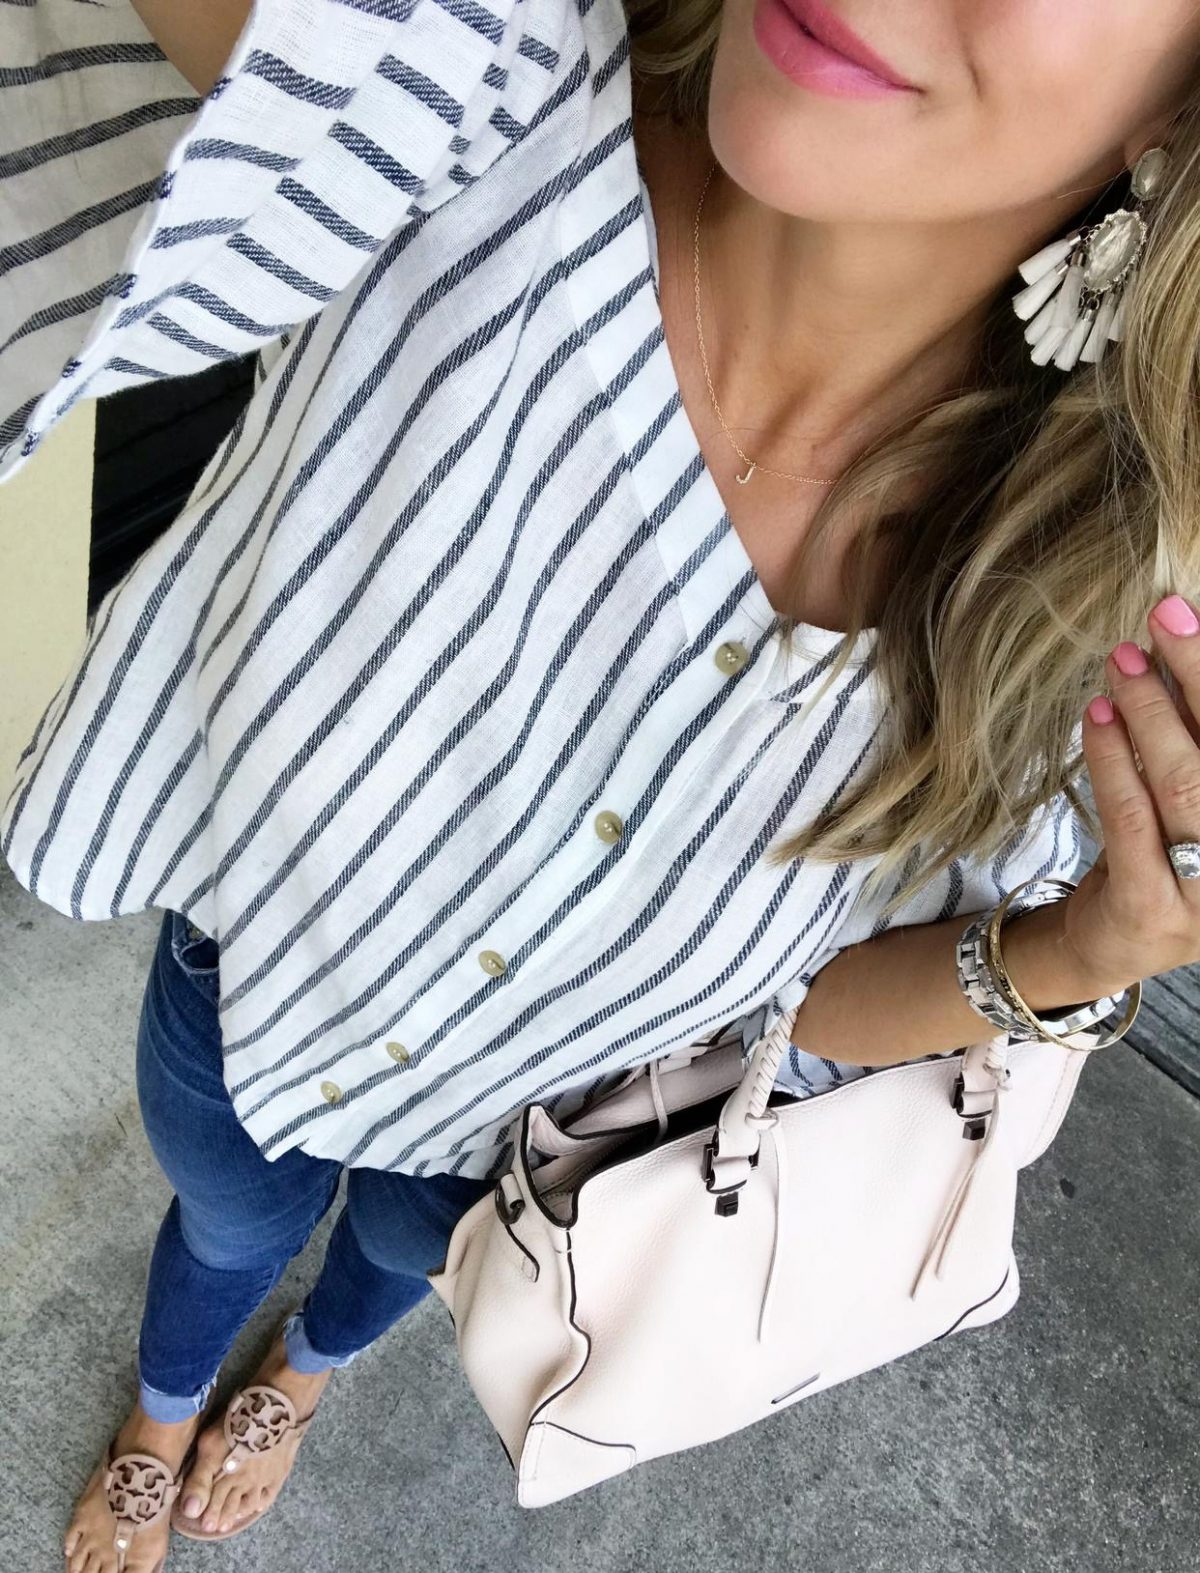 Spring outfit - Striped cold shoulder top jeans and flat sandals